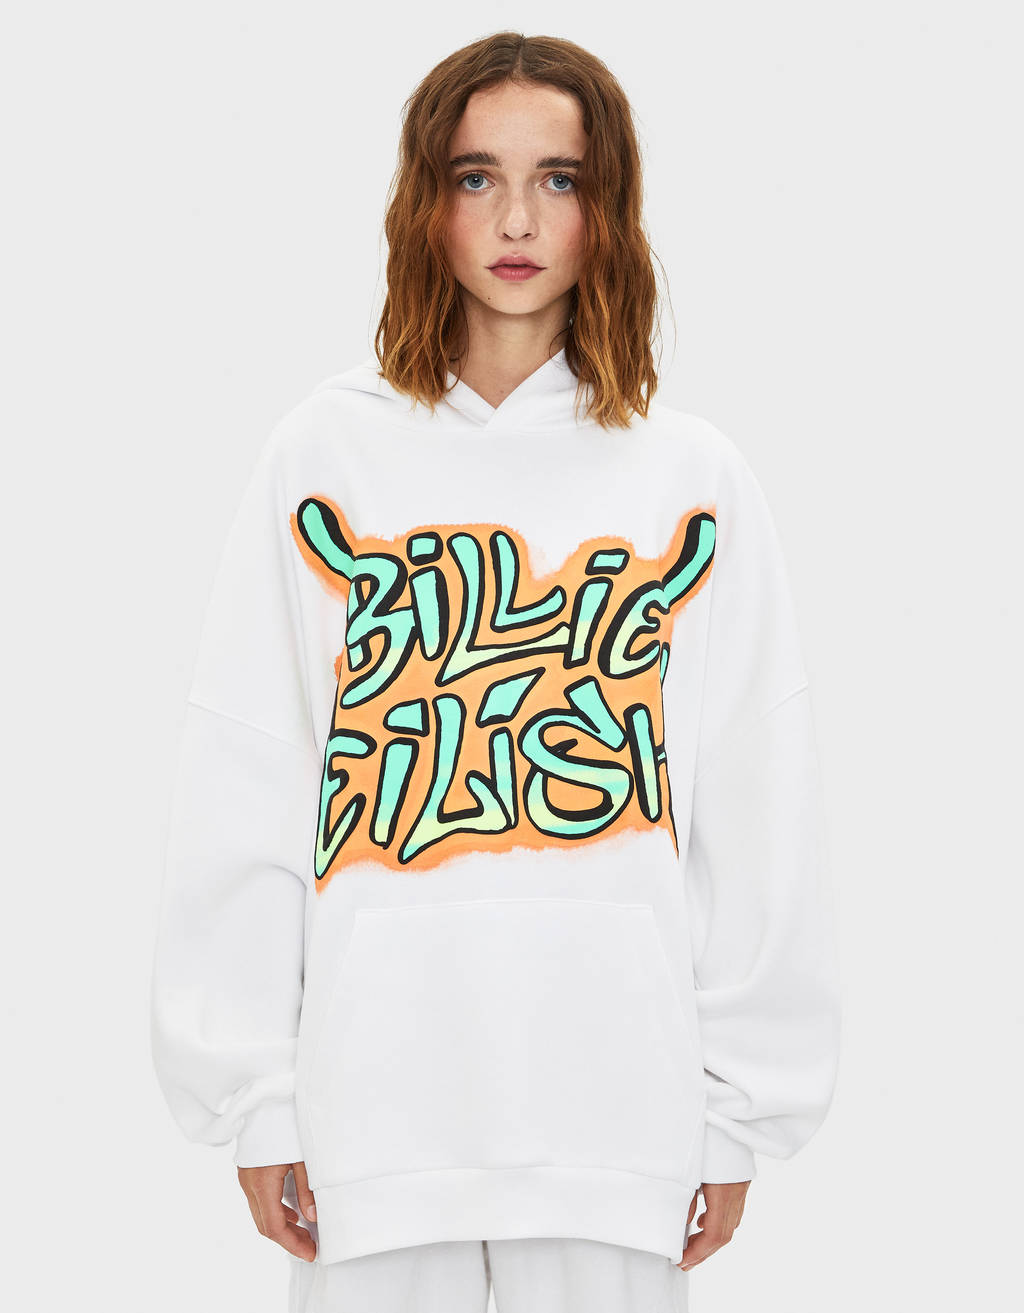 Pullover Billie Eilish x Bershka mit Graffiti